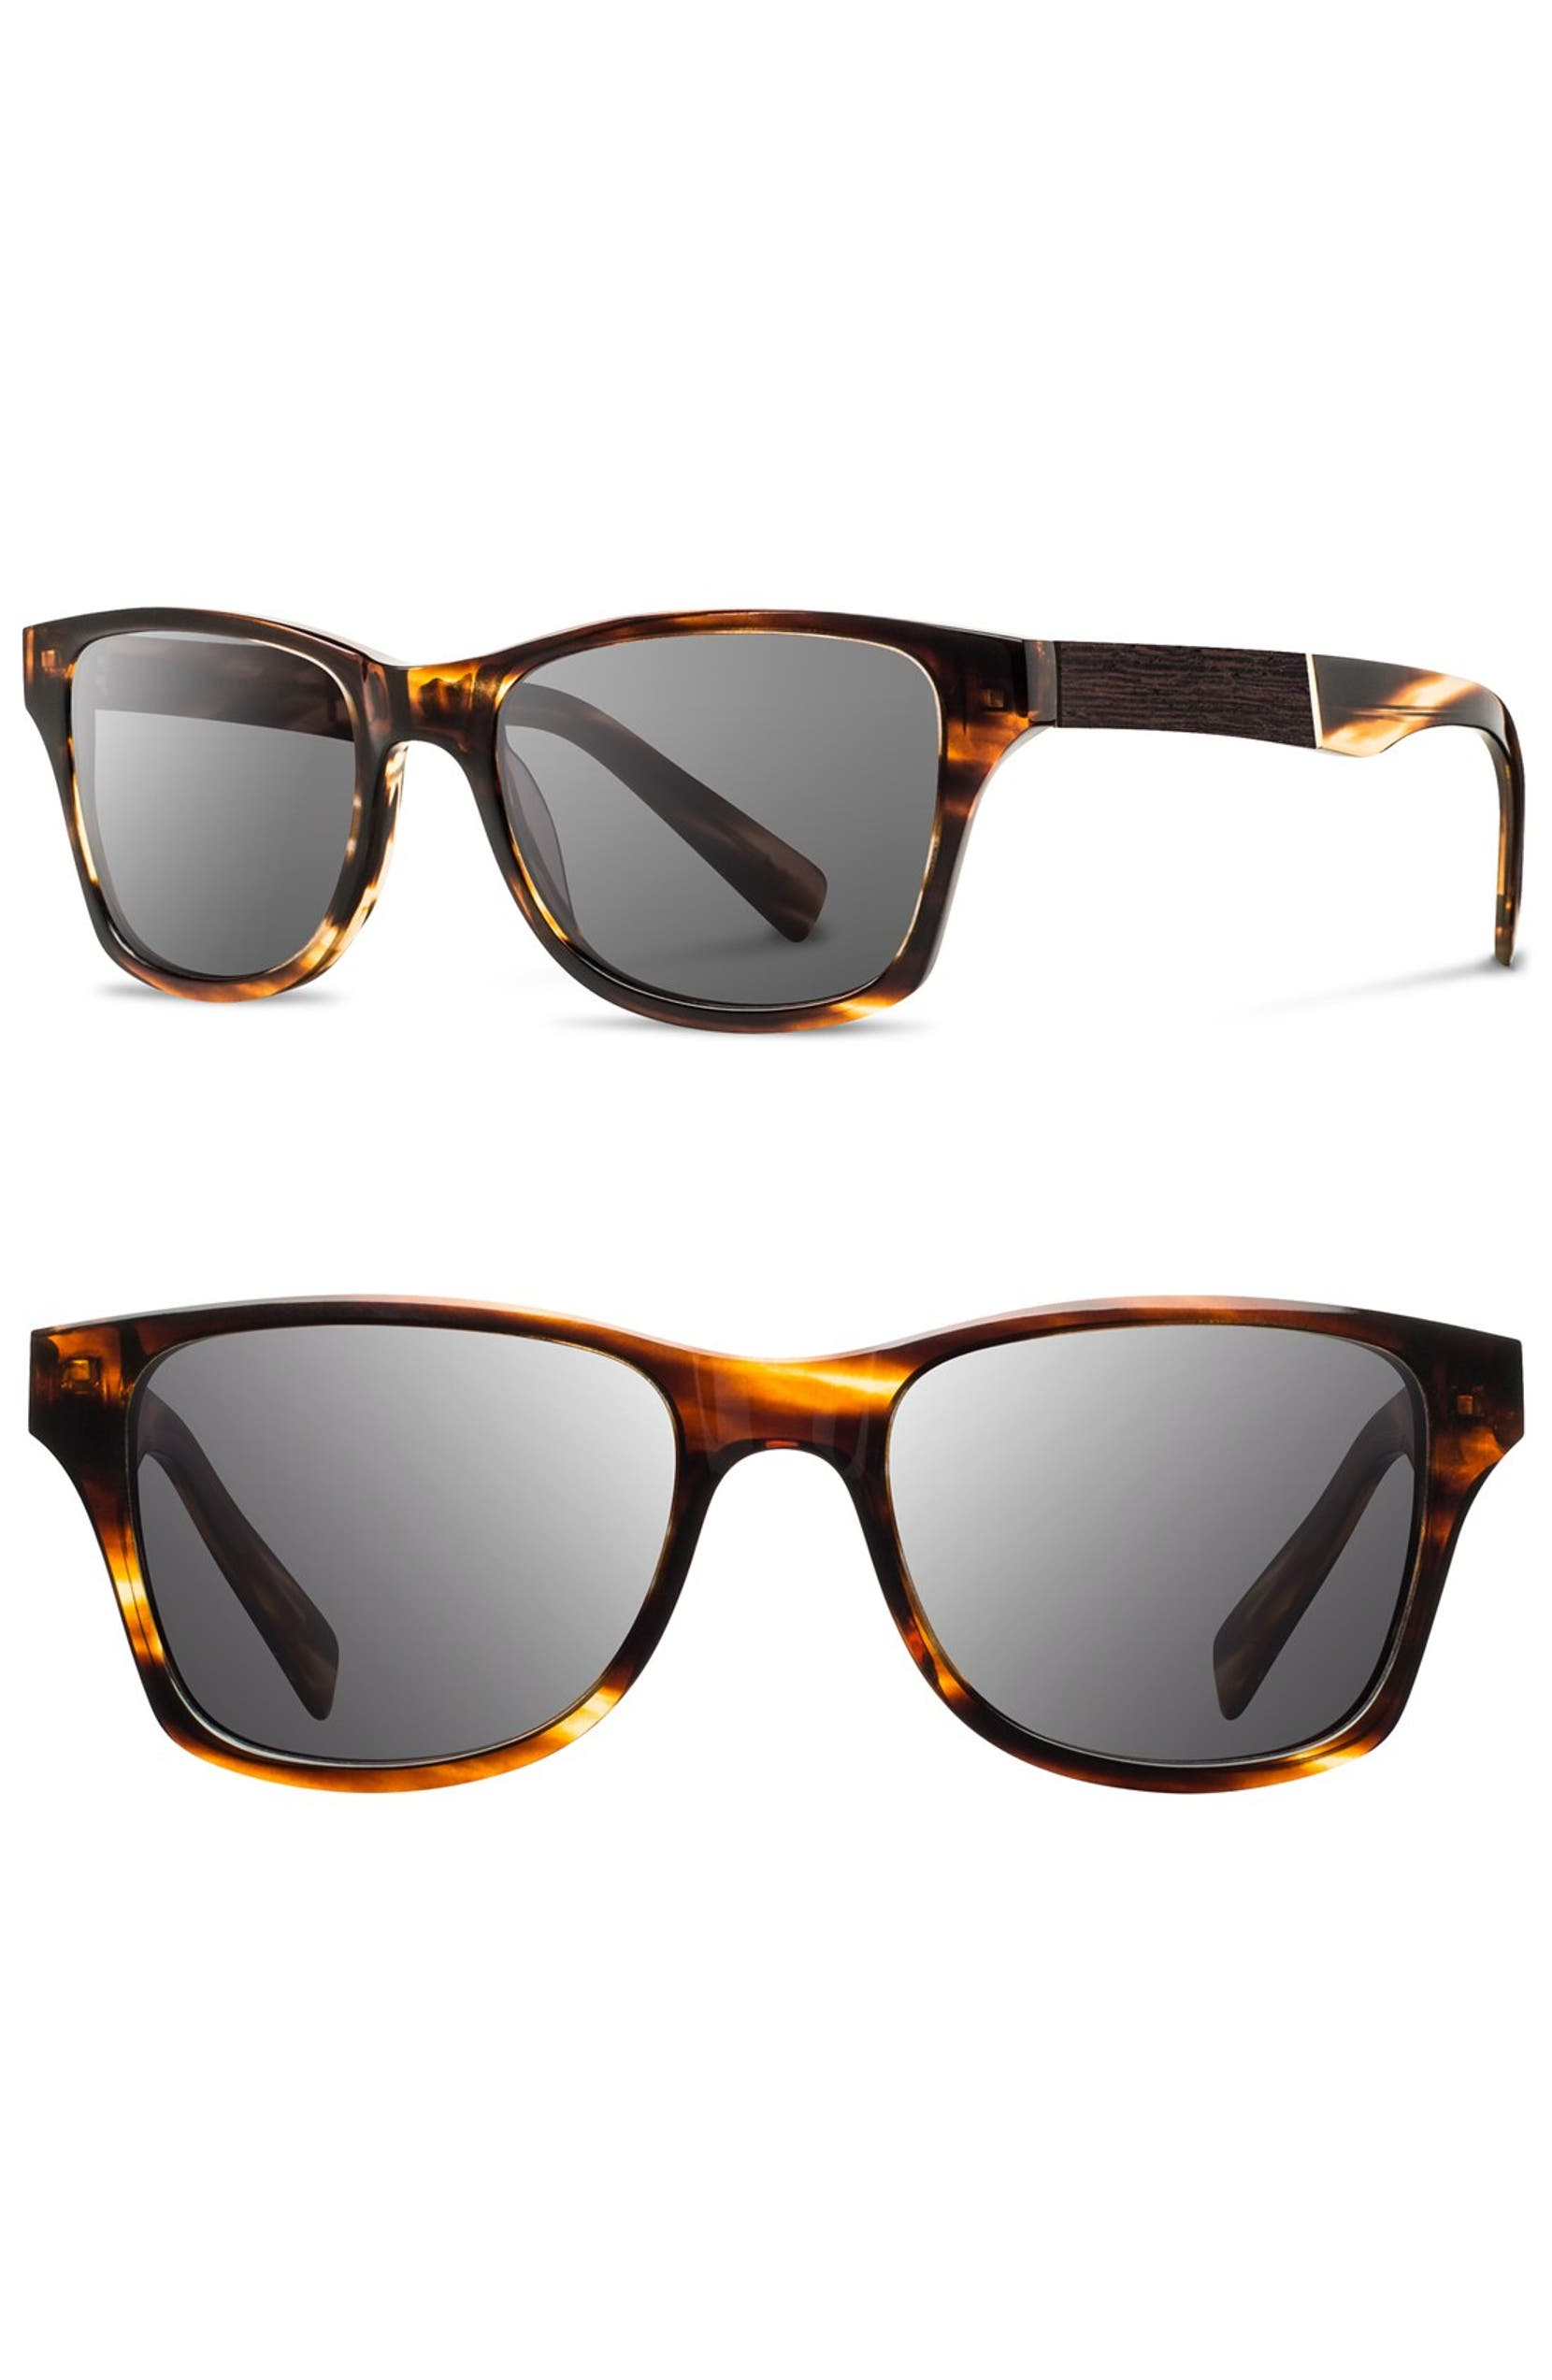 0503ce4560 Shwood  Canby  53mm Wood Sunglasses